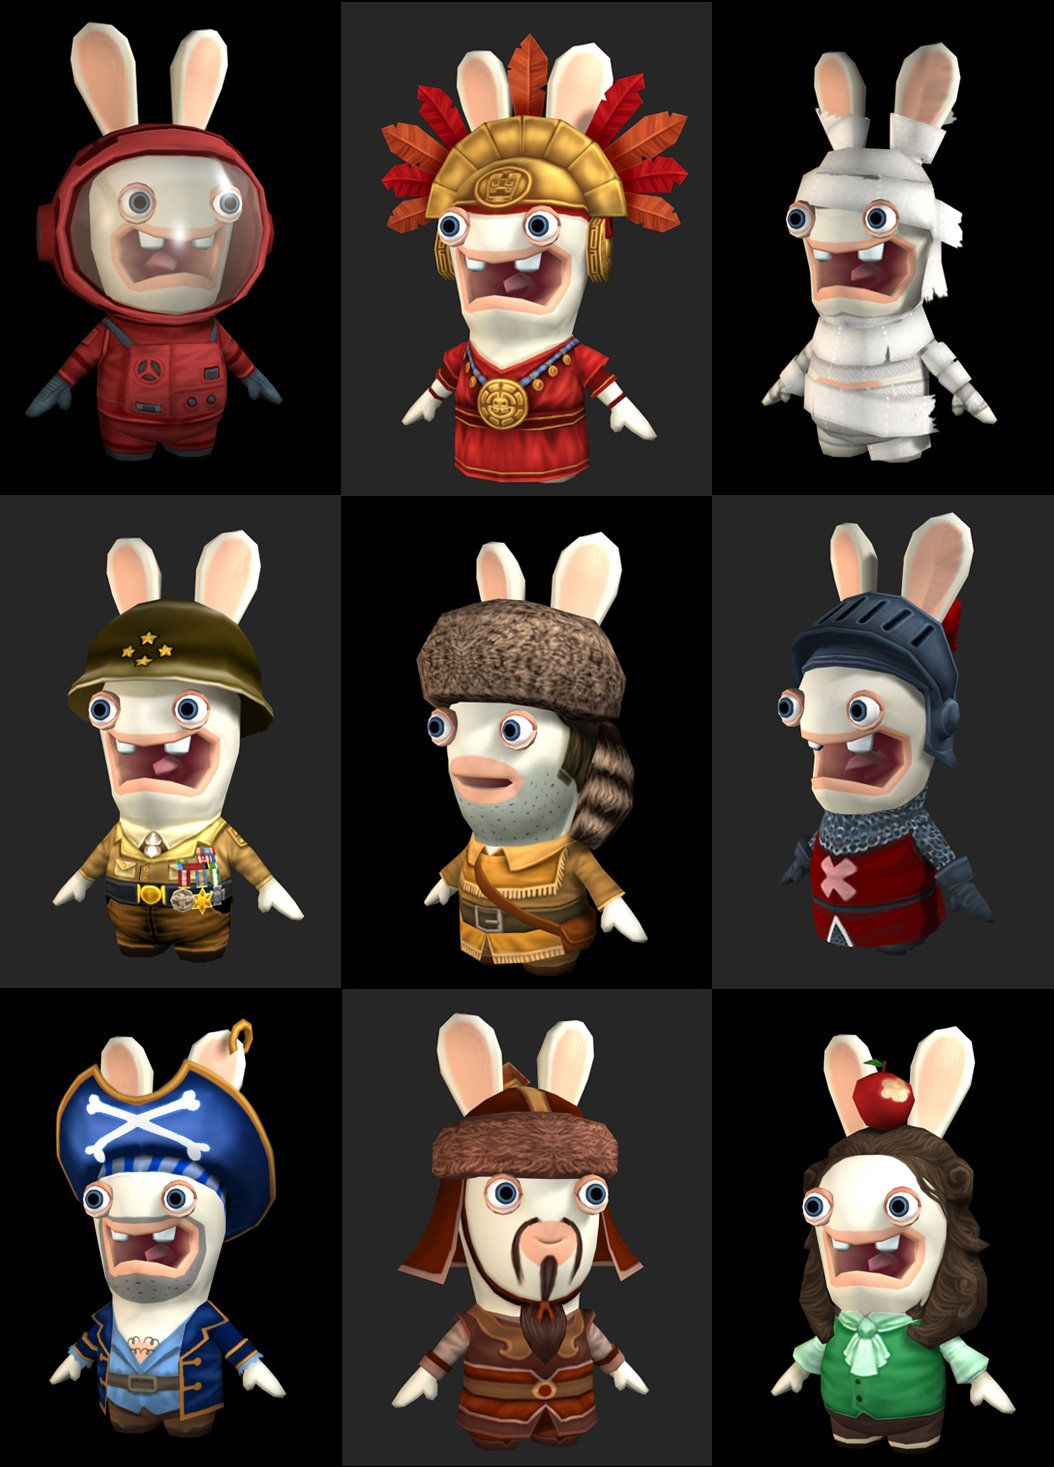 rabbid costume raving rabbids travel in time marthin agusta on artstation at - Raving Rabbids Halloween Costume